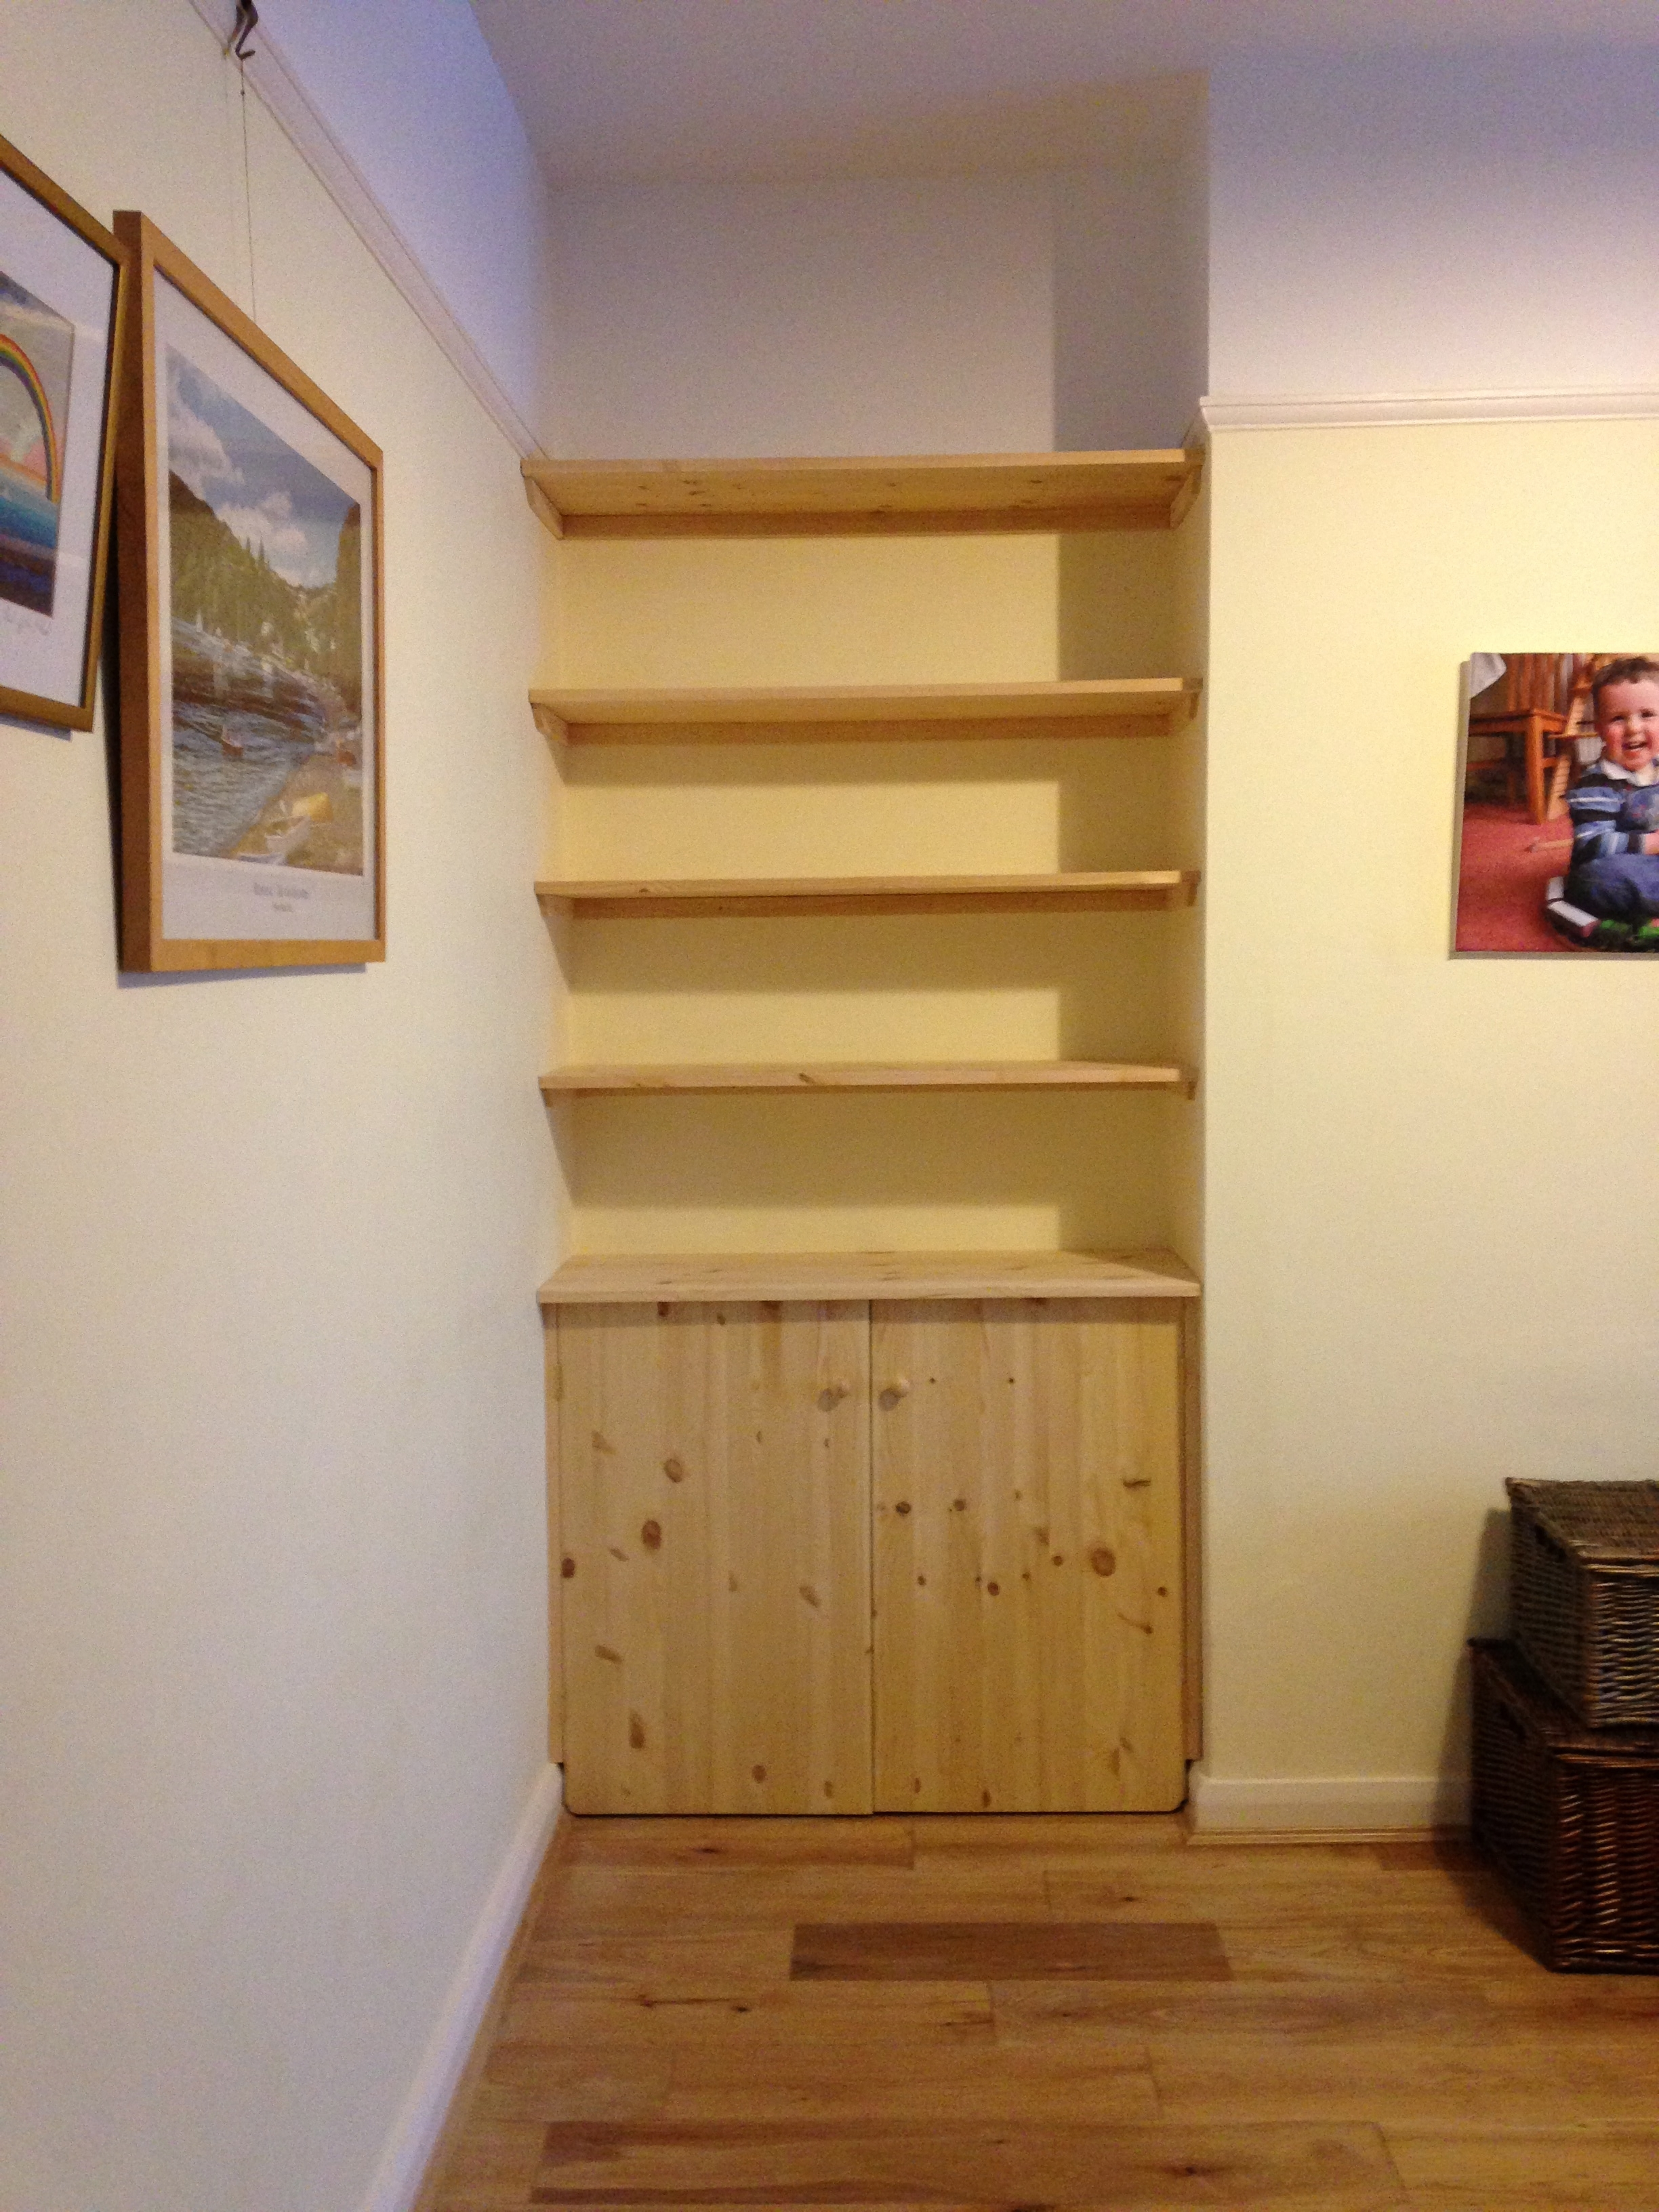 Fitted Shelving Cupboards And Flooring P D Carpentry Building Regarding Shelves And Cupboards (#5 of 12)